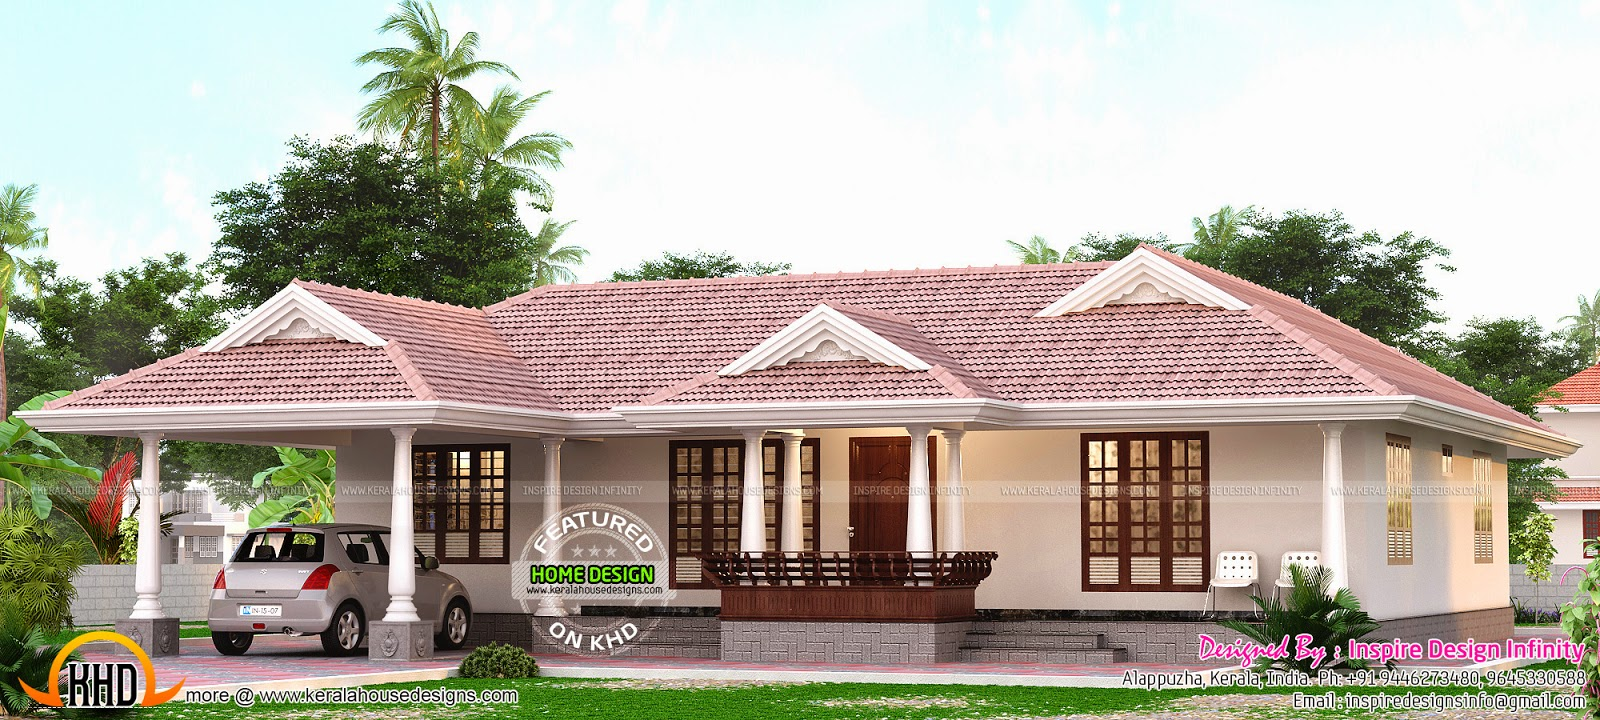 Charming 3 Bedroom Tradition Kerala Home With Nadumuttam Part - 5: Nalukettu Style Kerala House With Nadumuttam - ARCHITECTURE KERALA | Home |  Pinterest | Kerala, House And Bungalow